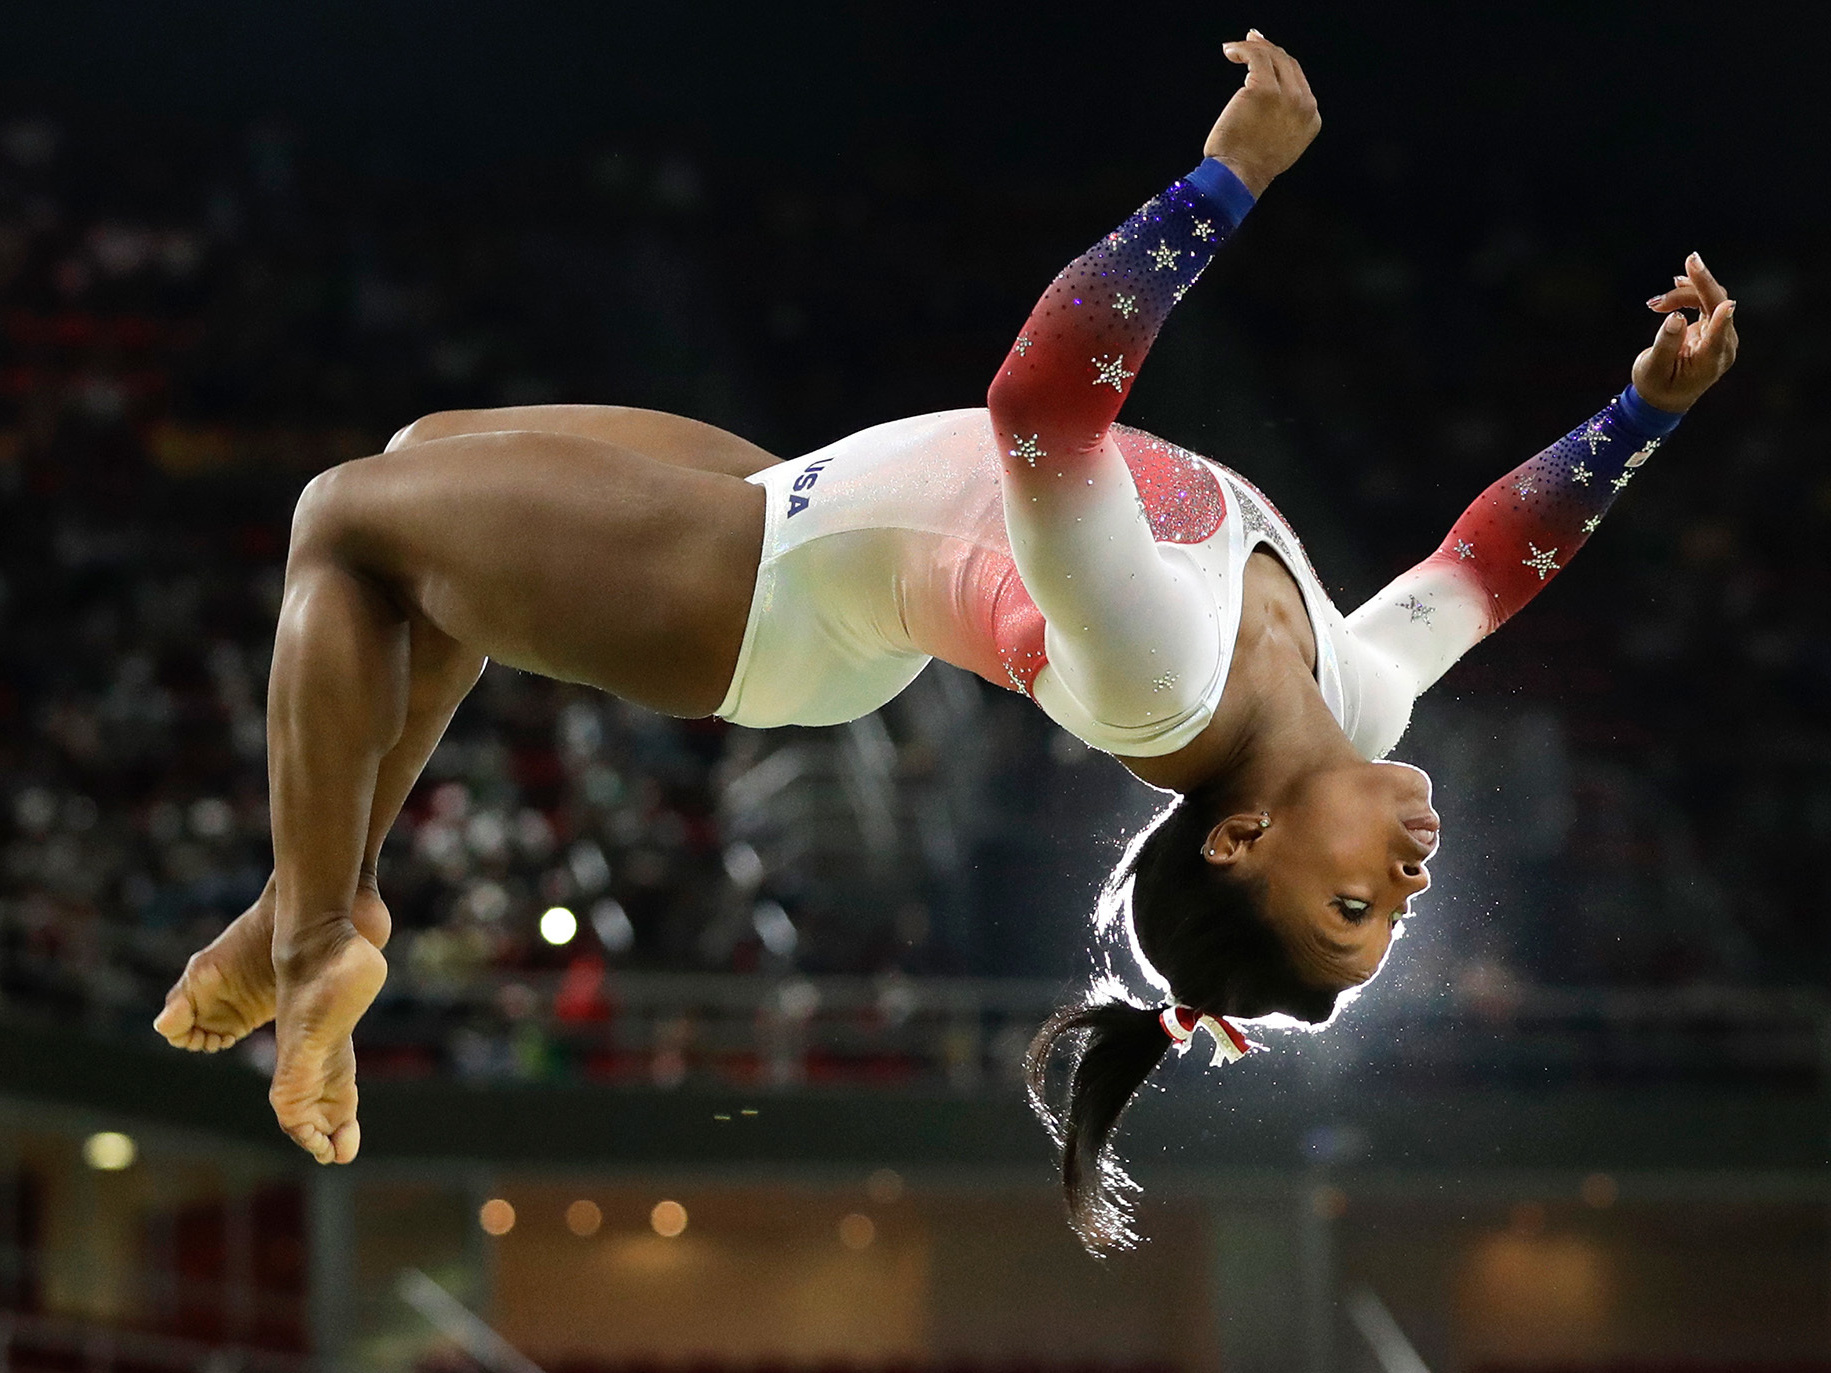 Simone Biles flies through the air while performing on the balance beam at the Olympics in Rio de Janeiro. (Photo by Dmitri Lovetsky/Associated Press)